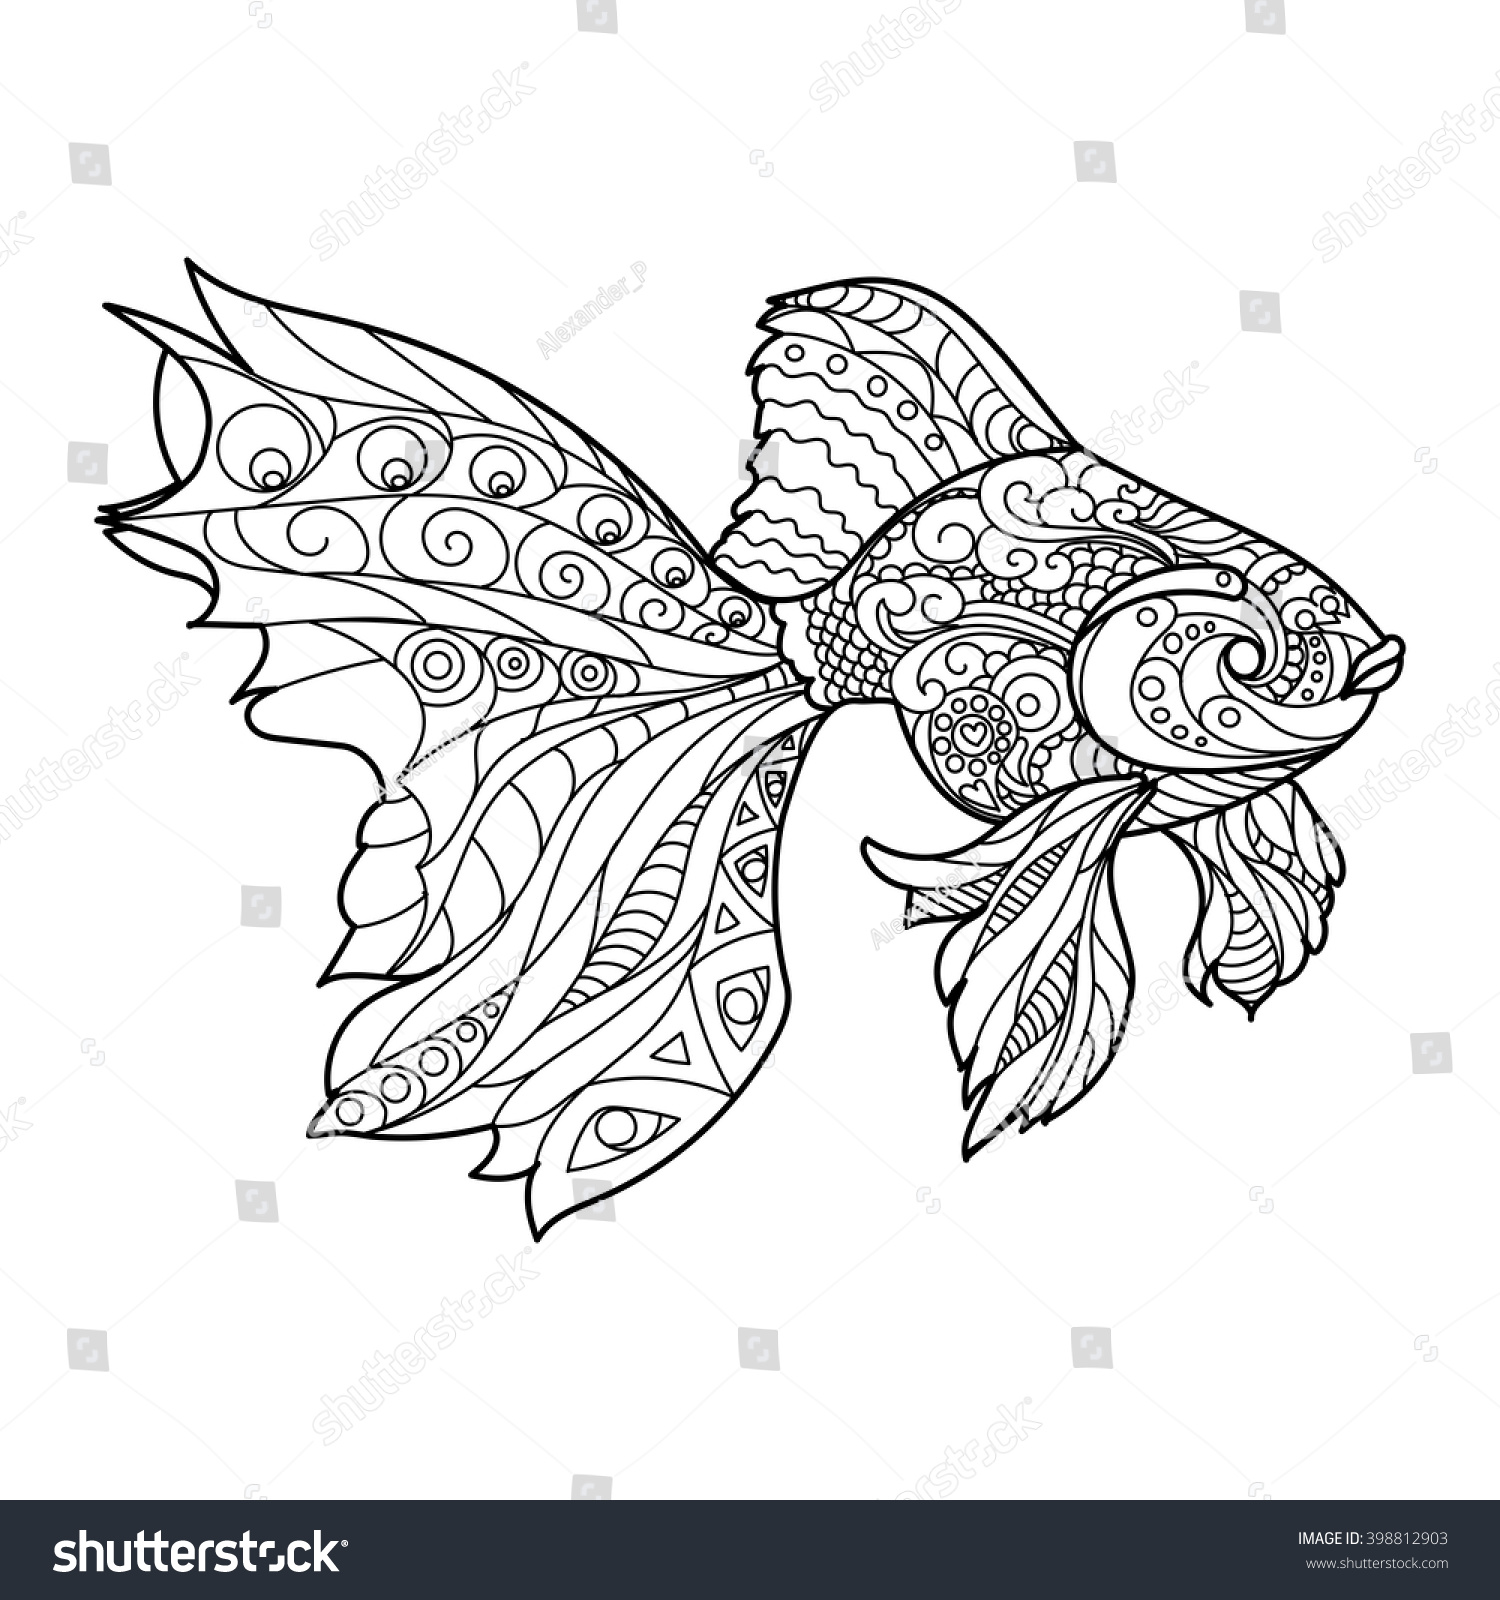 gold fish coloring book for adults vector illustration anti stress coloring for adult - Fish Coloring Book